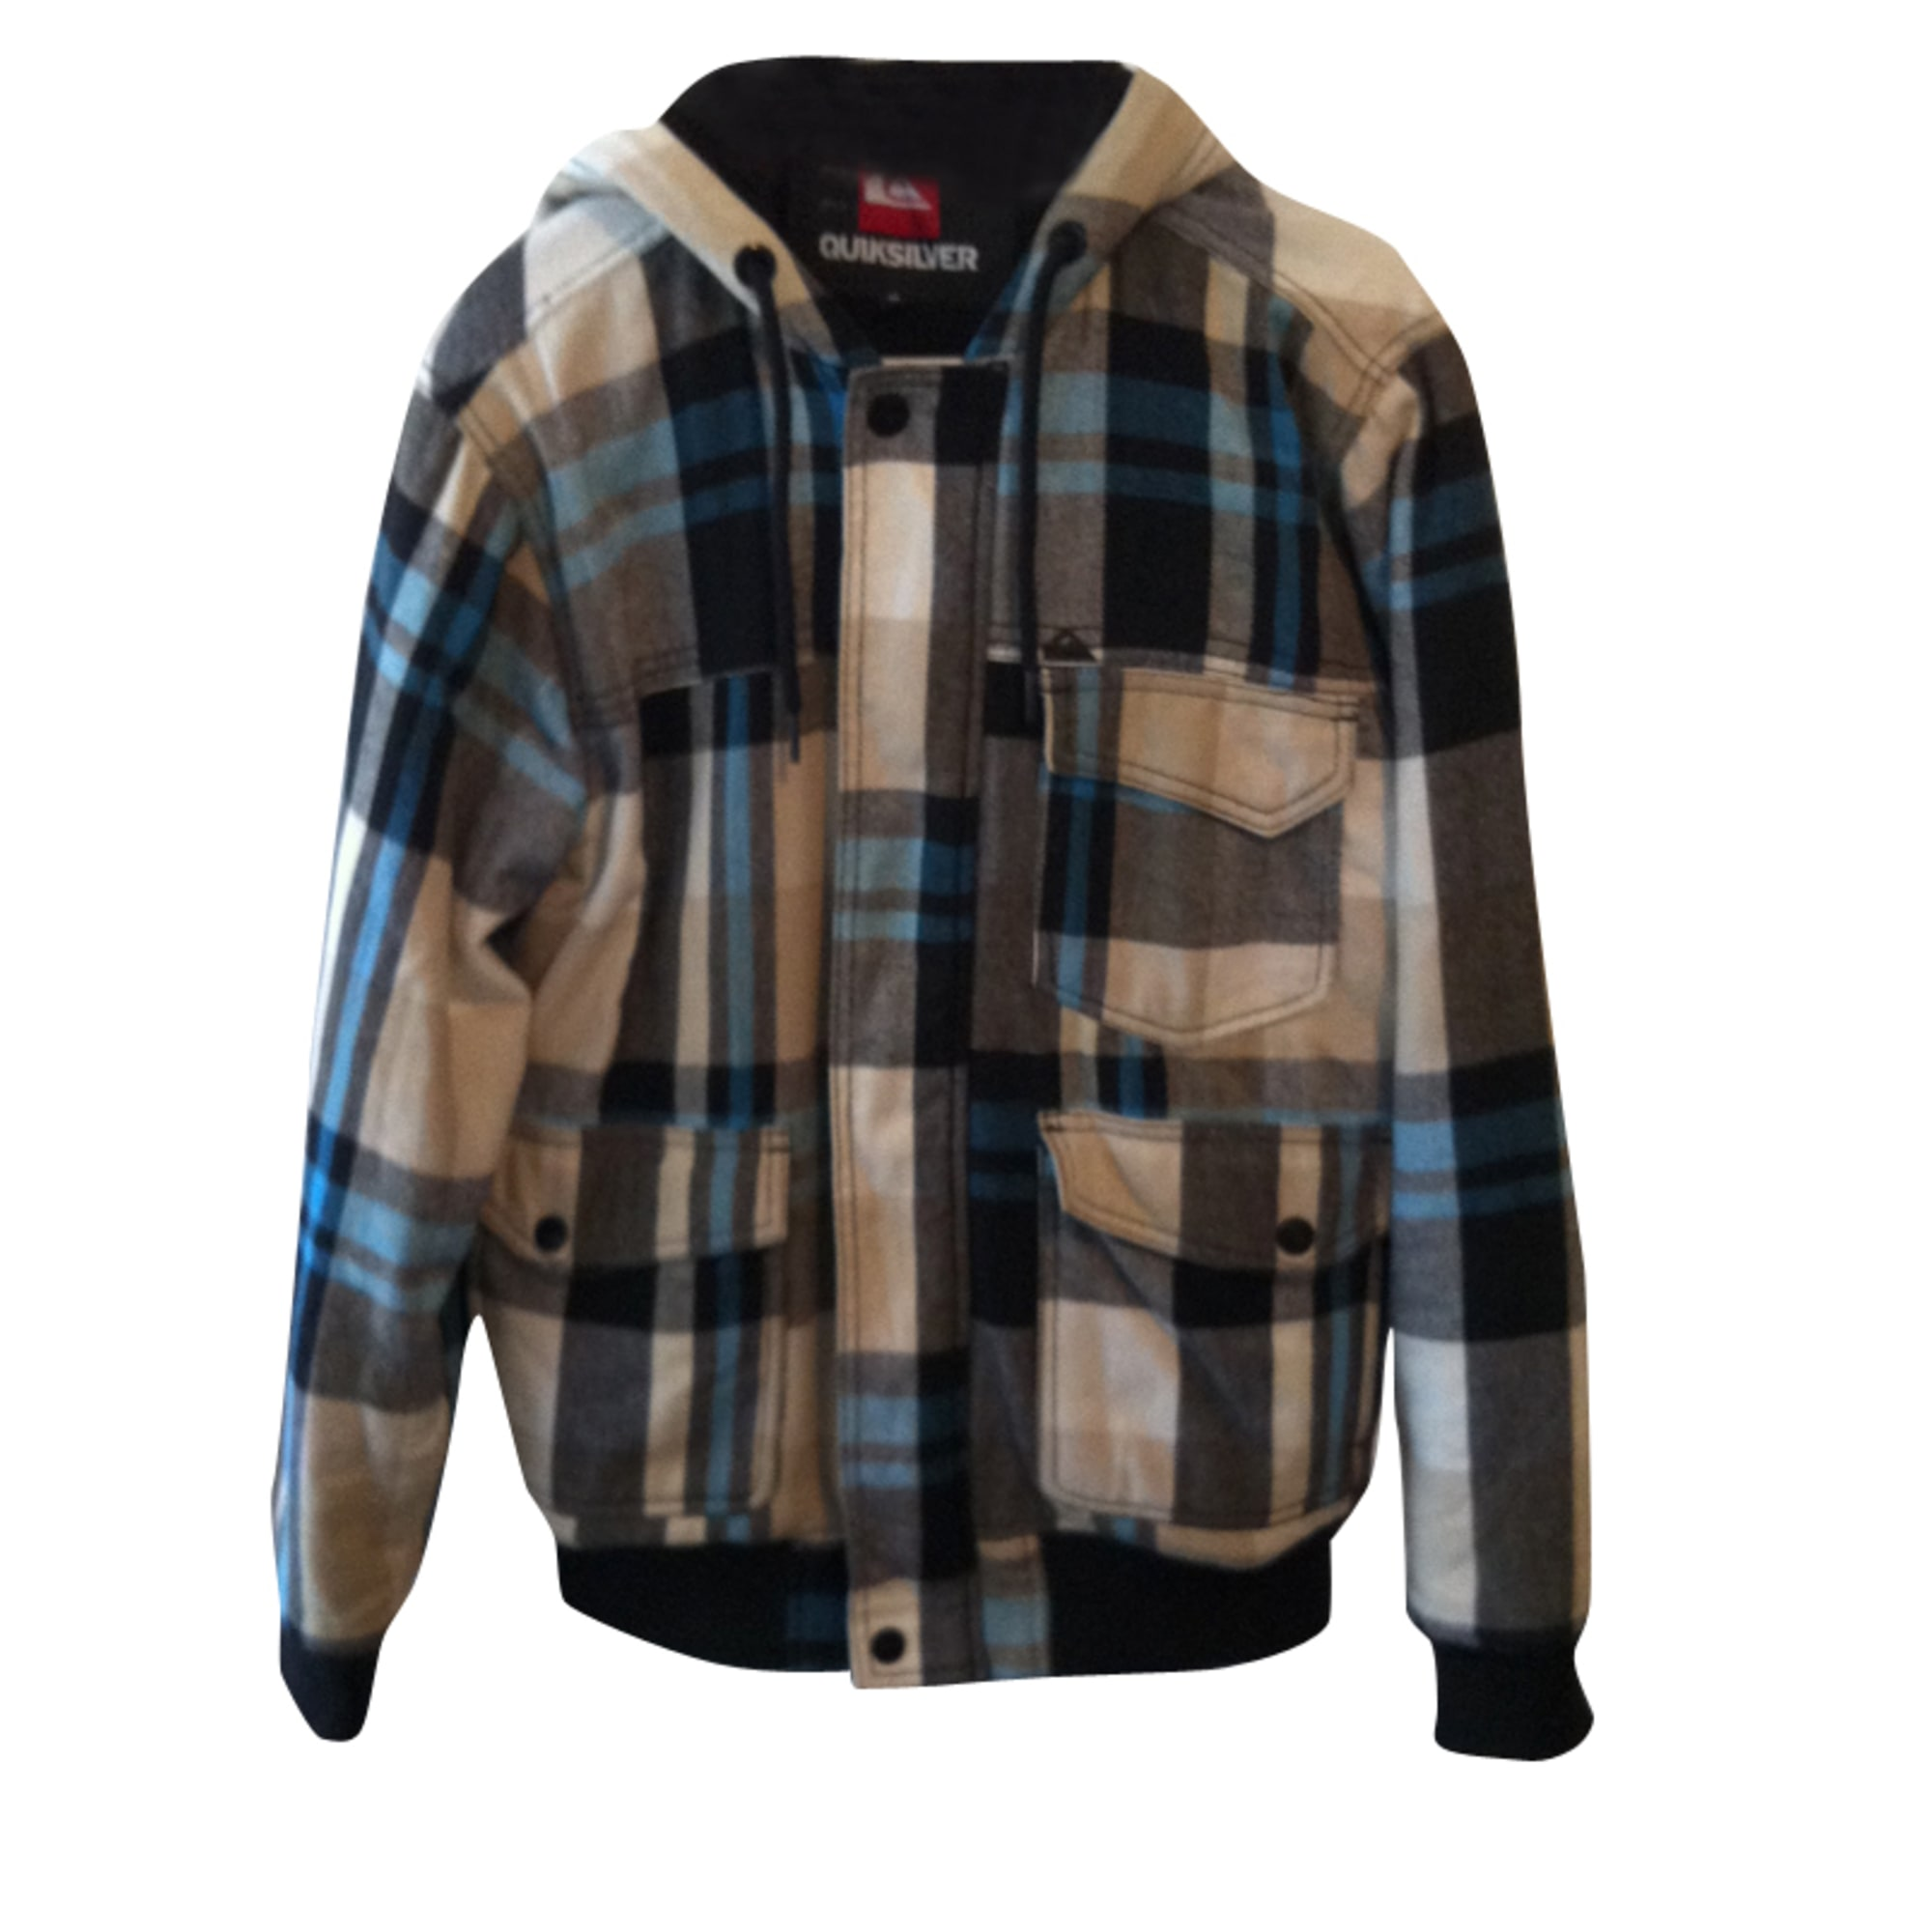 Manteau Carreaux Manteau Homme Carreaux Quiksilver OXZTuPki